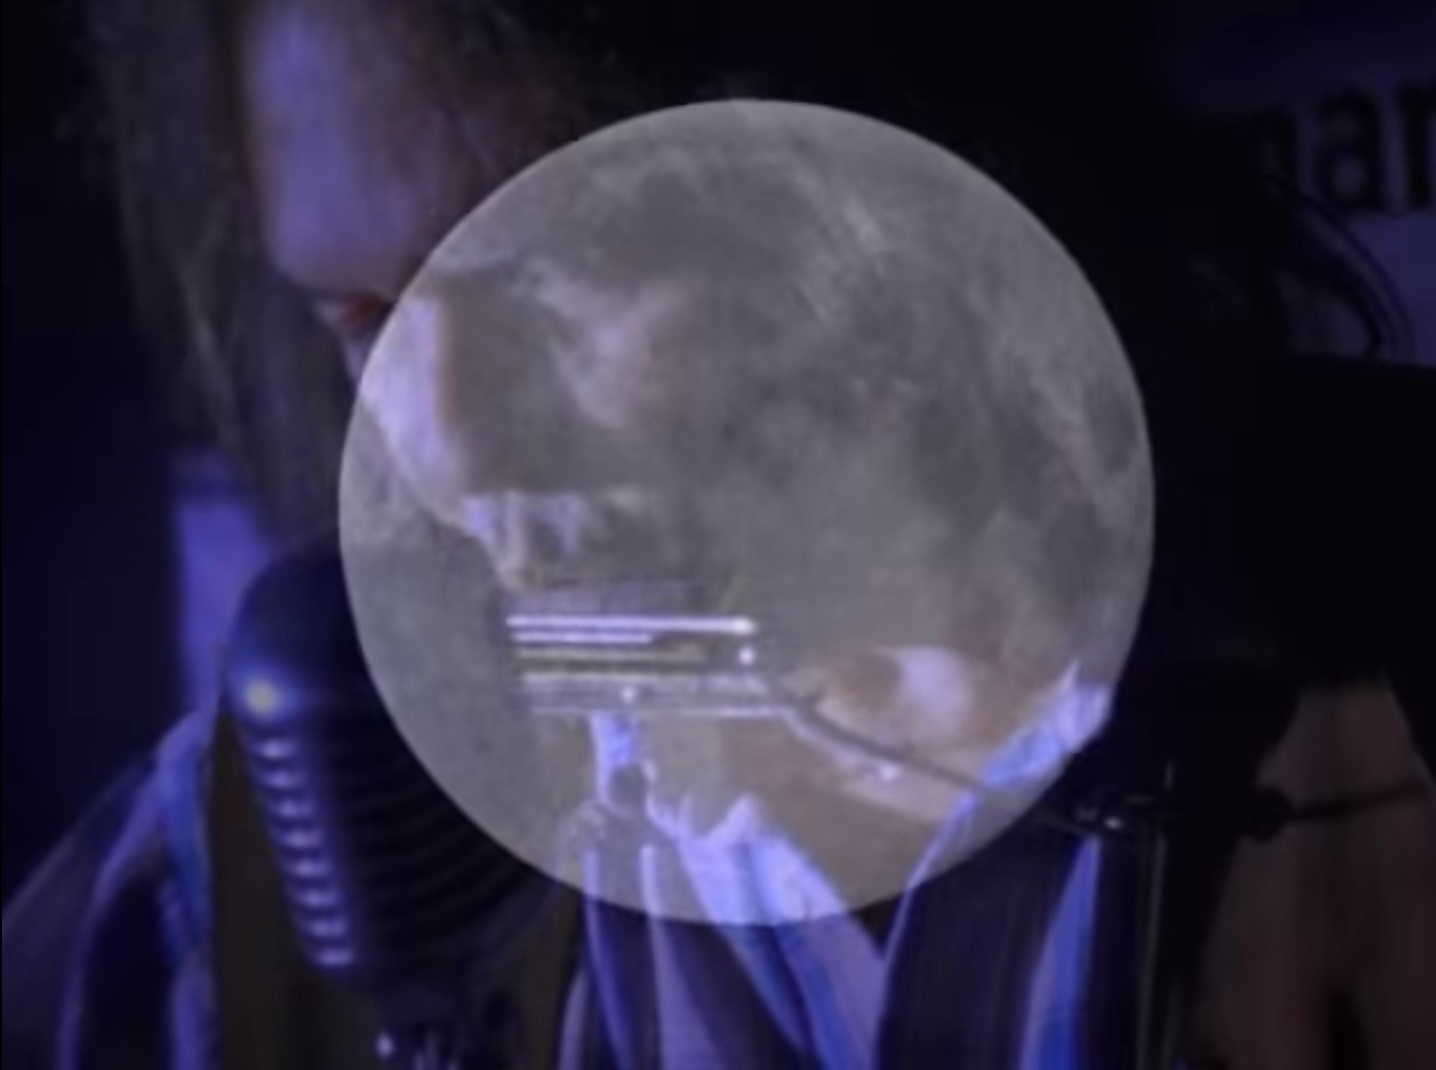 Neil Young Infos und News - Rusted Moon  Neil Young Info...